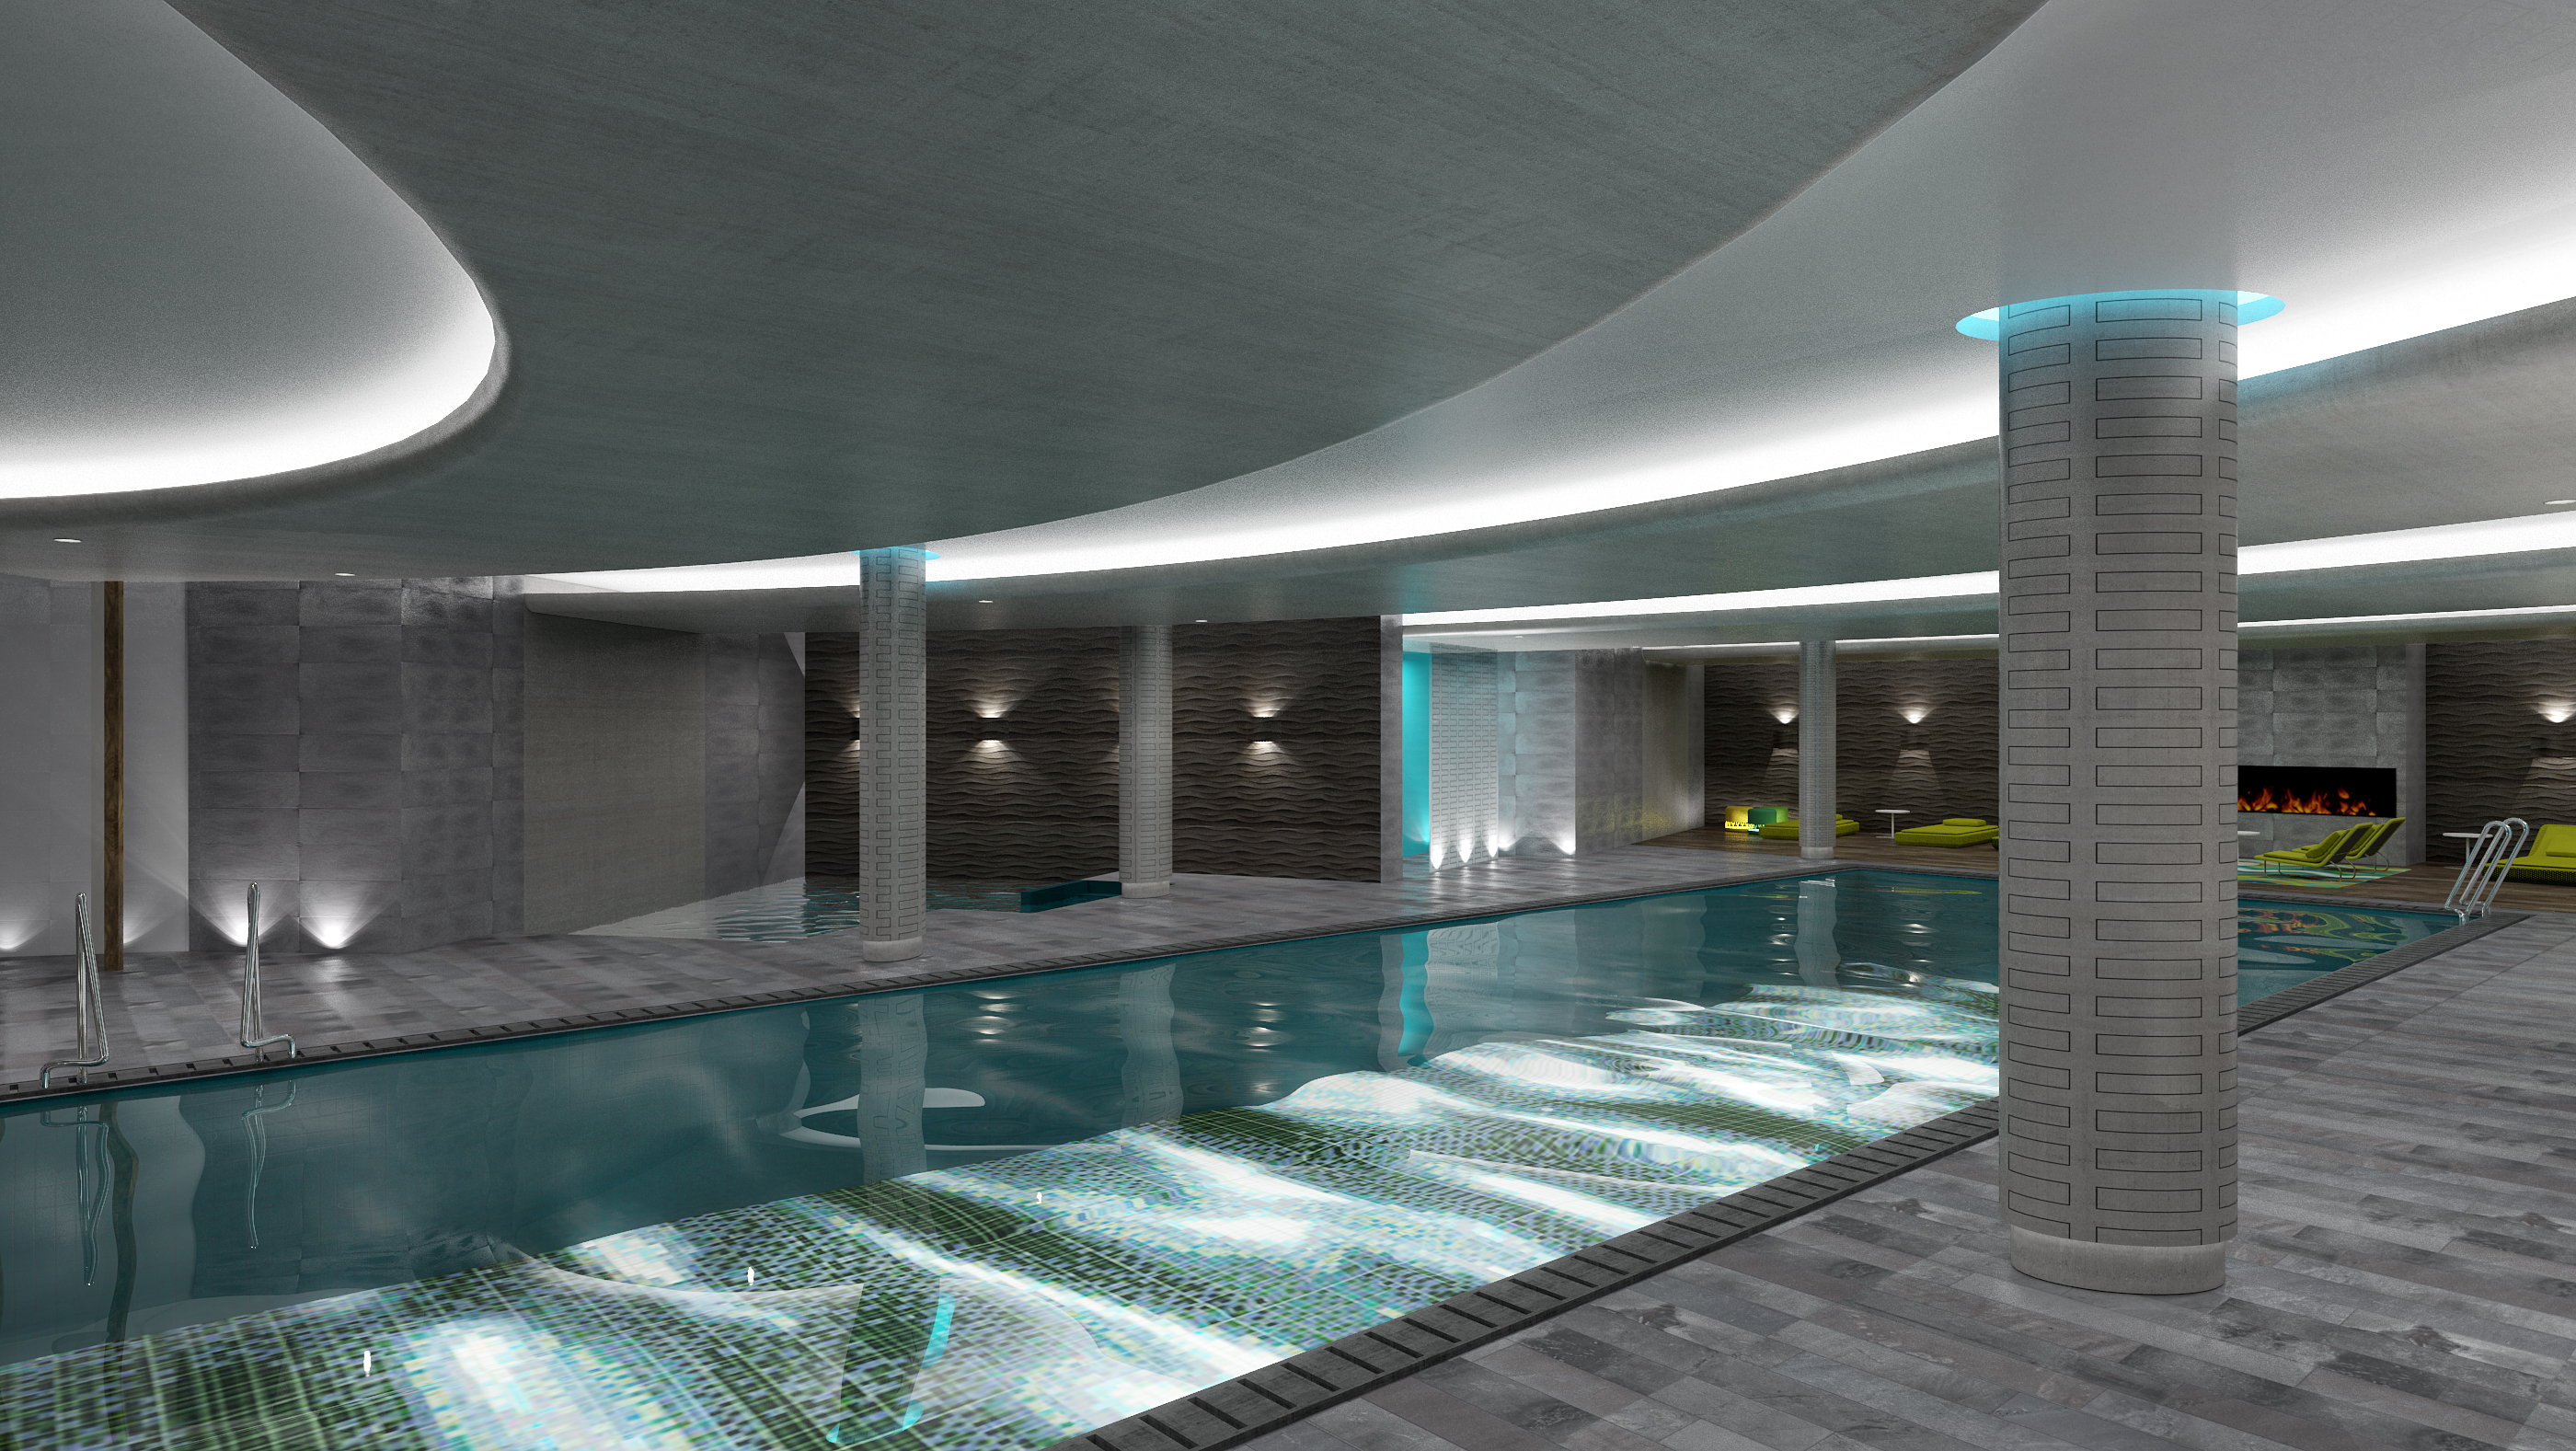 corporate wellness swimming pool with ceiling lights and pillars